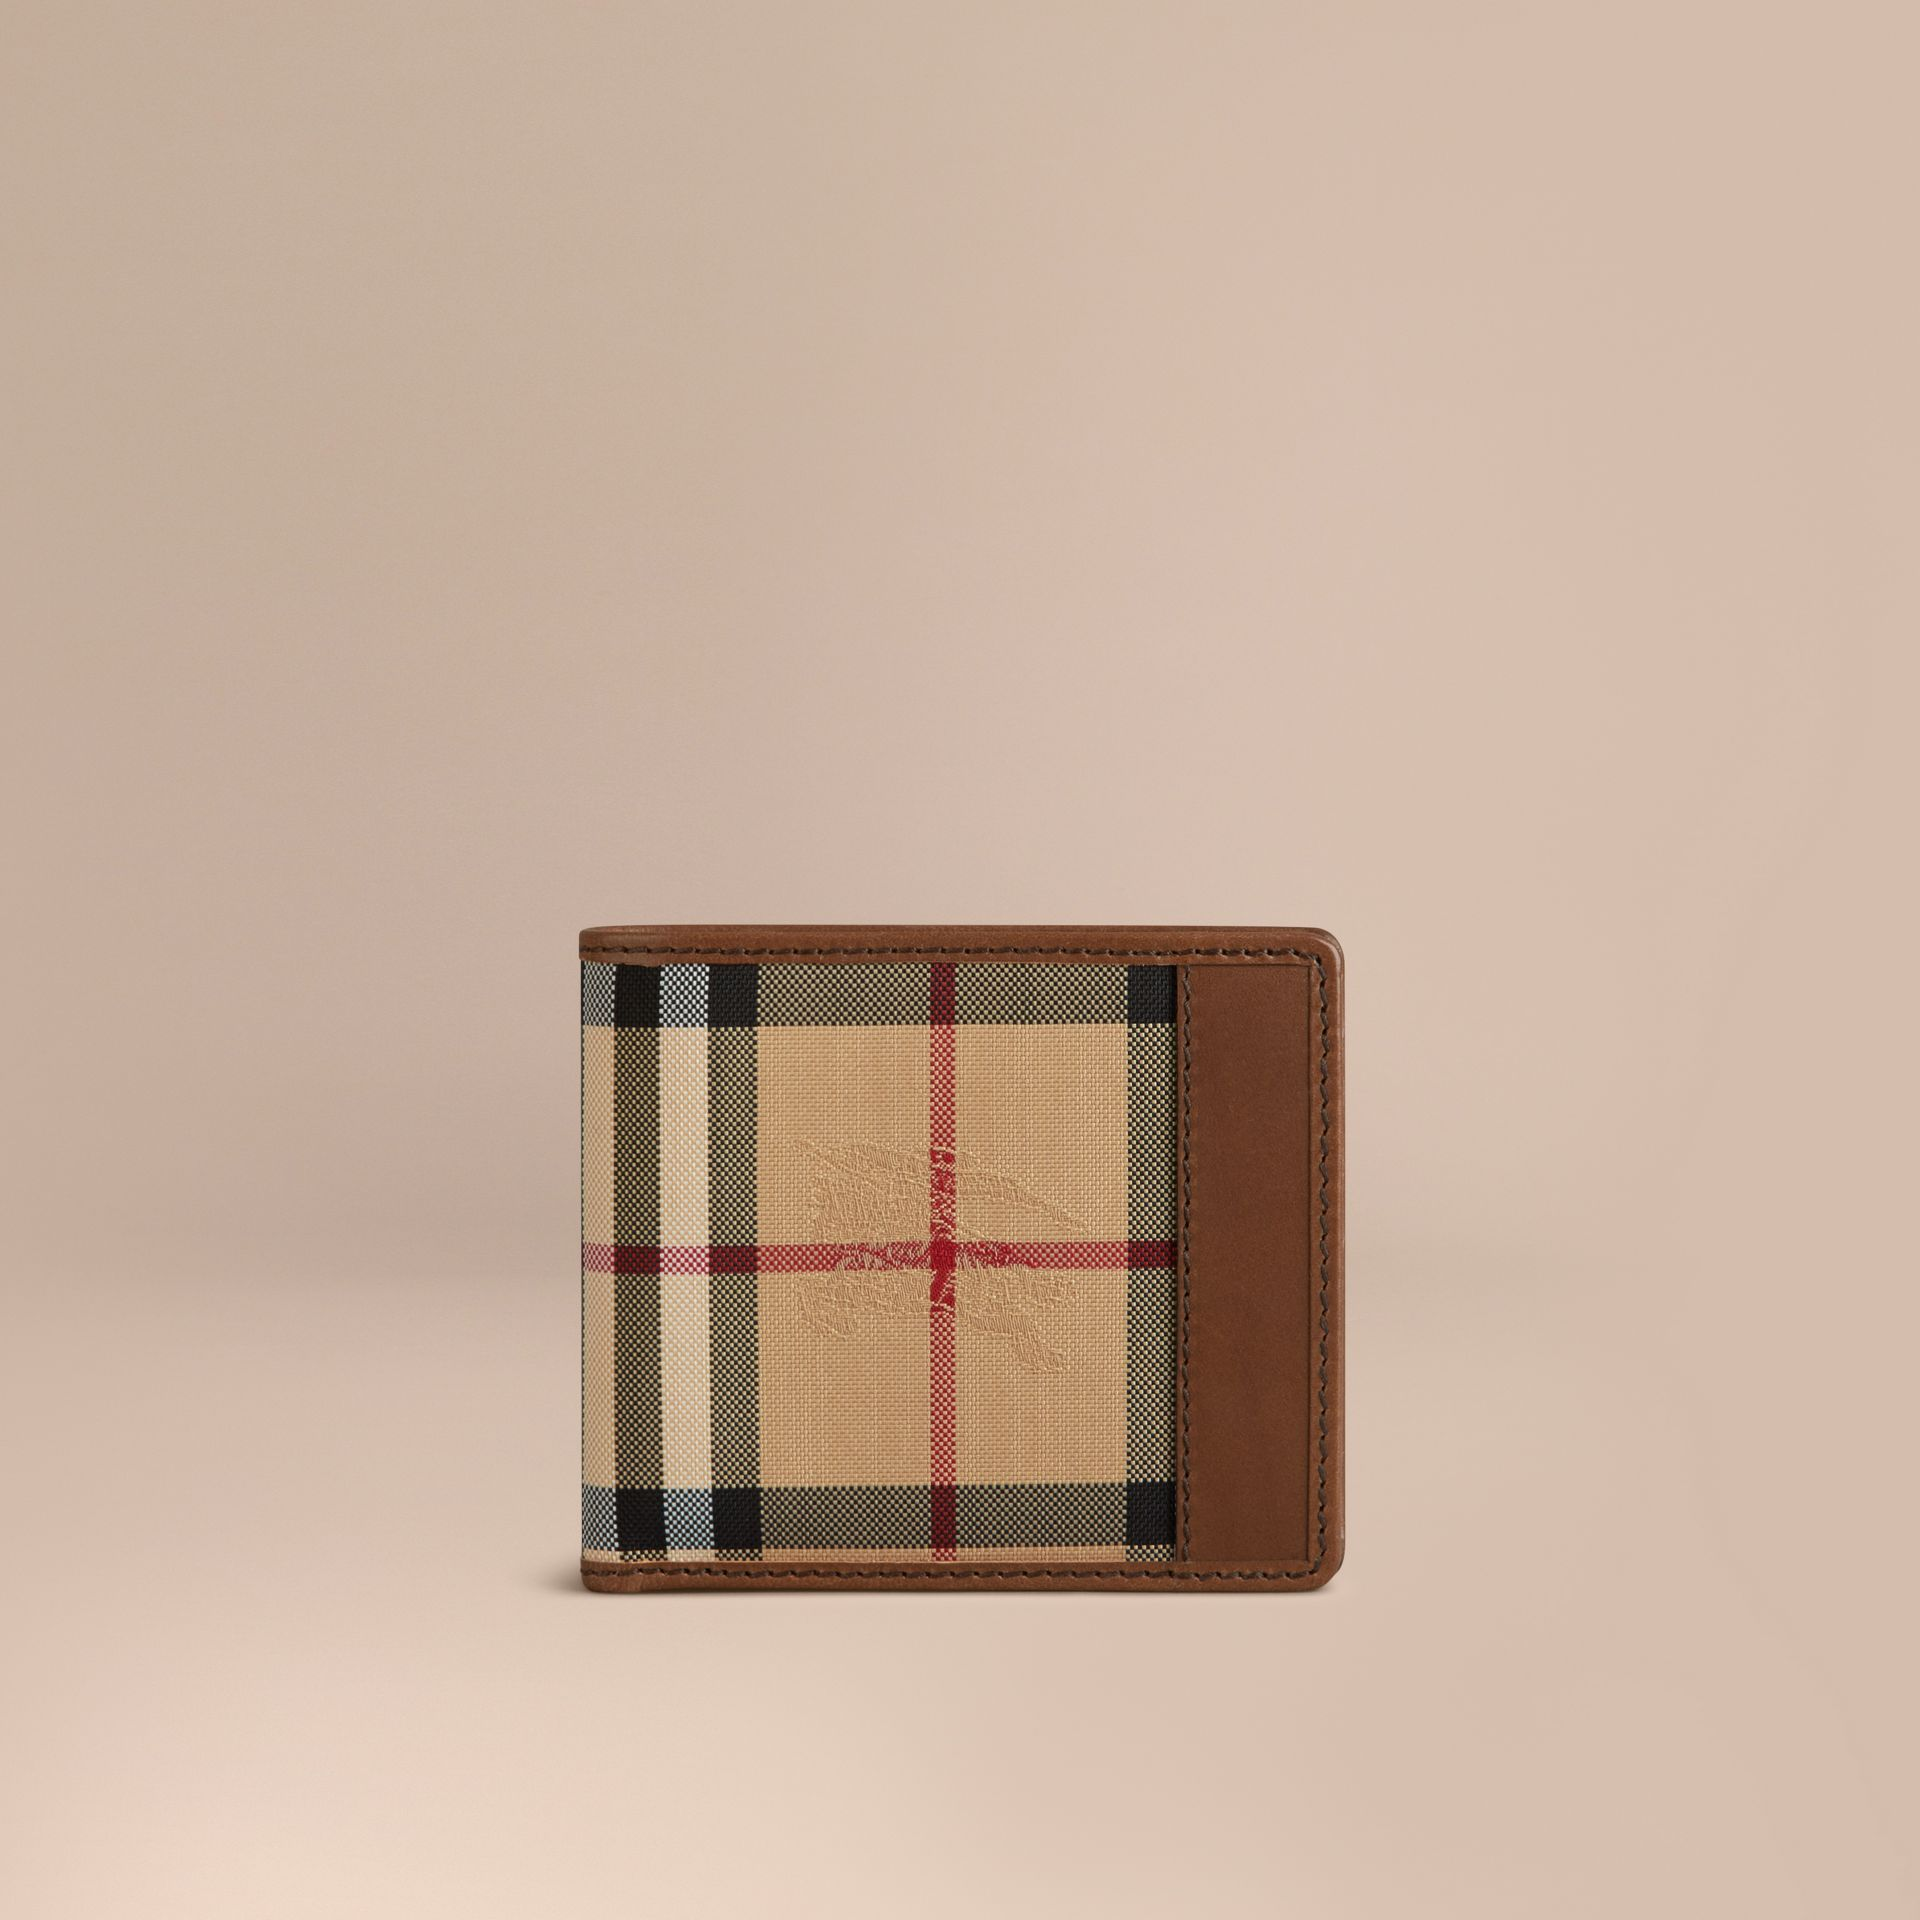 Horseferry Check International Bifold Wallet in Tan - Men | Burberry Canada - gallery image 1